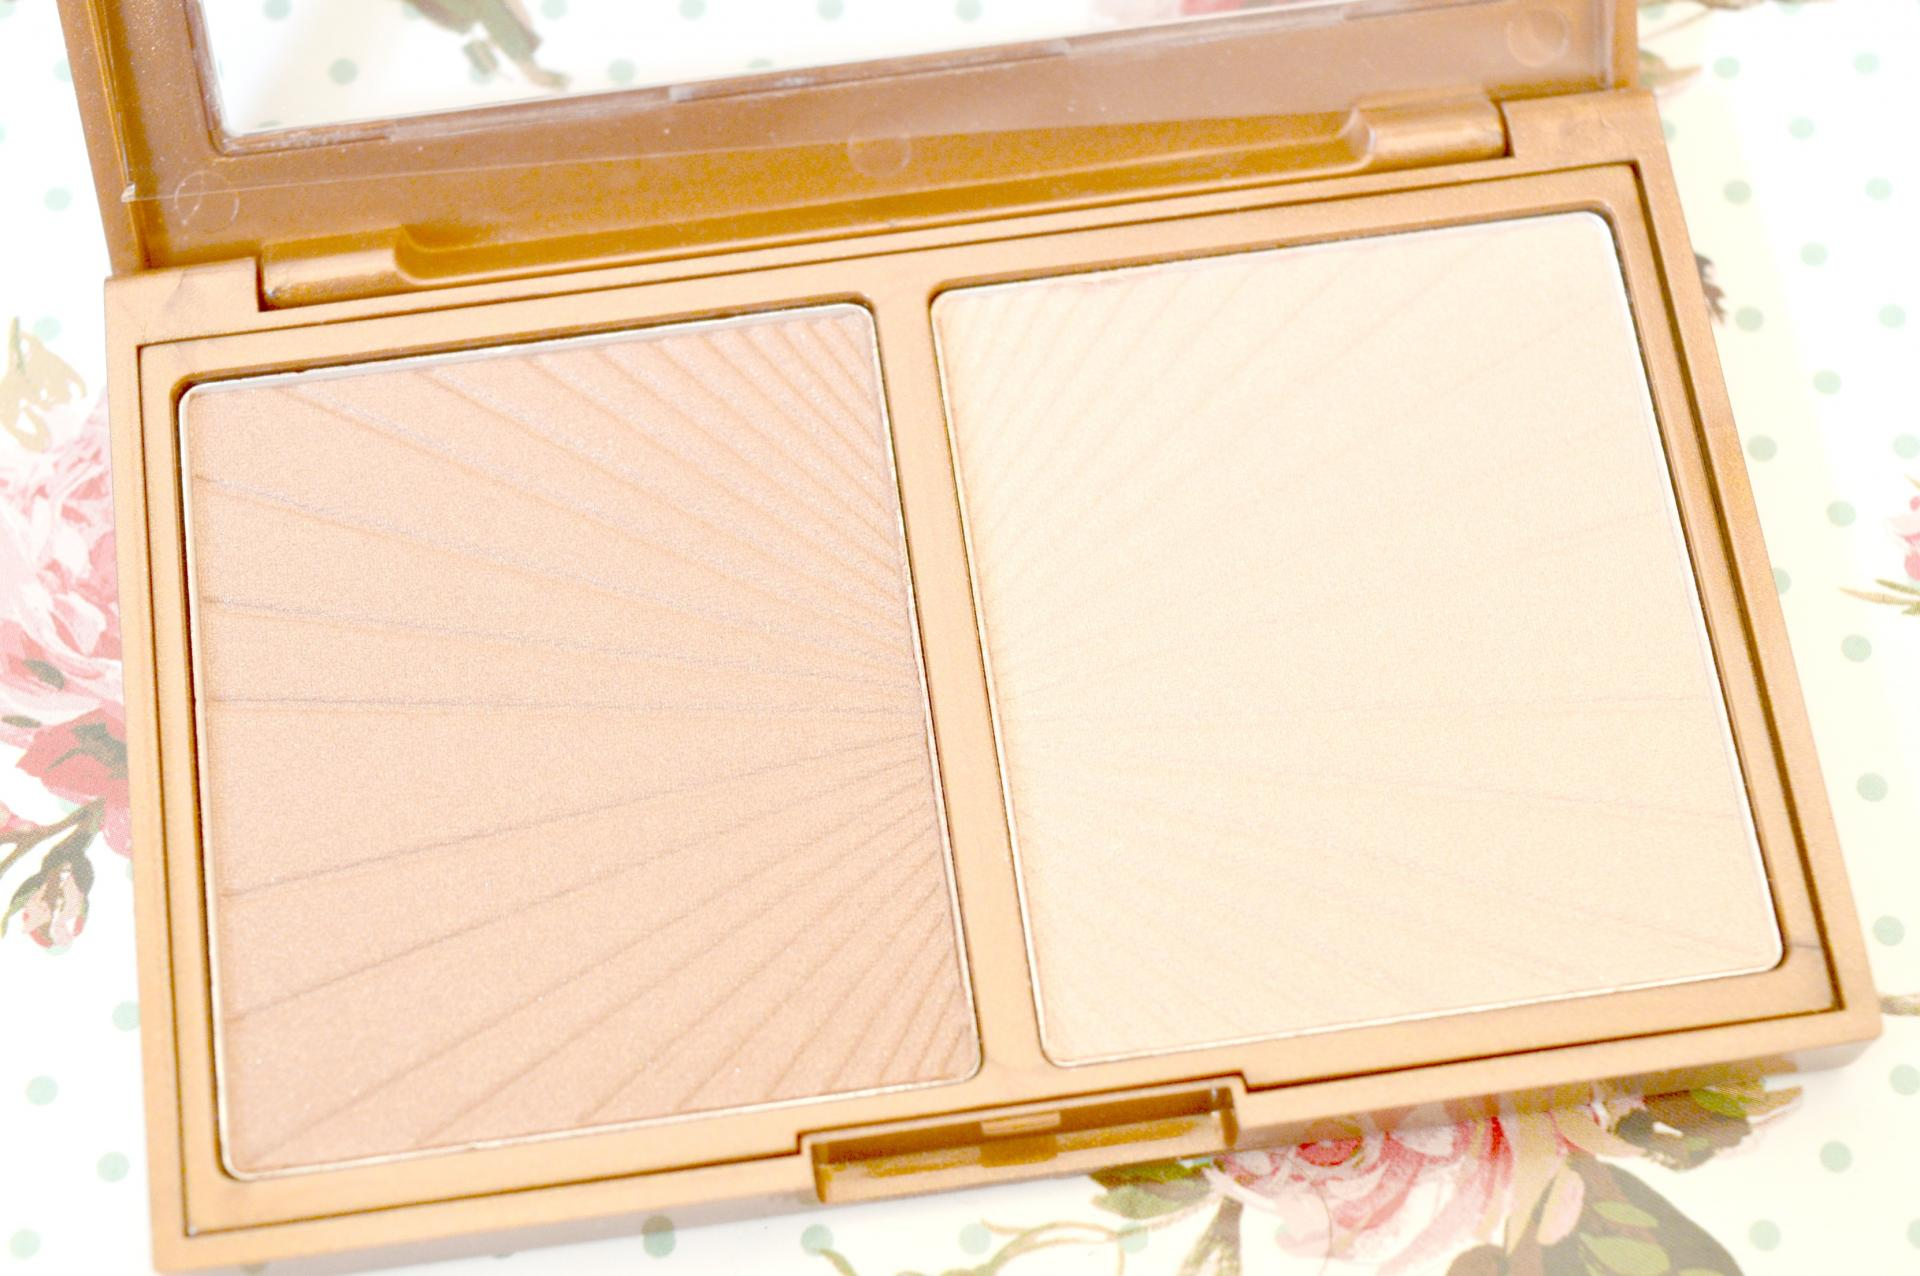 W7 Hollywood Bronze and Glow Review